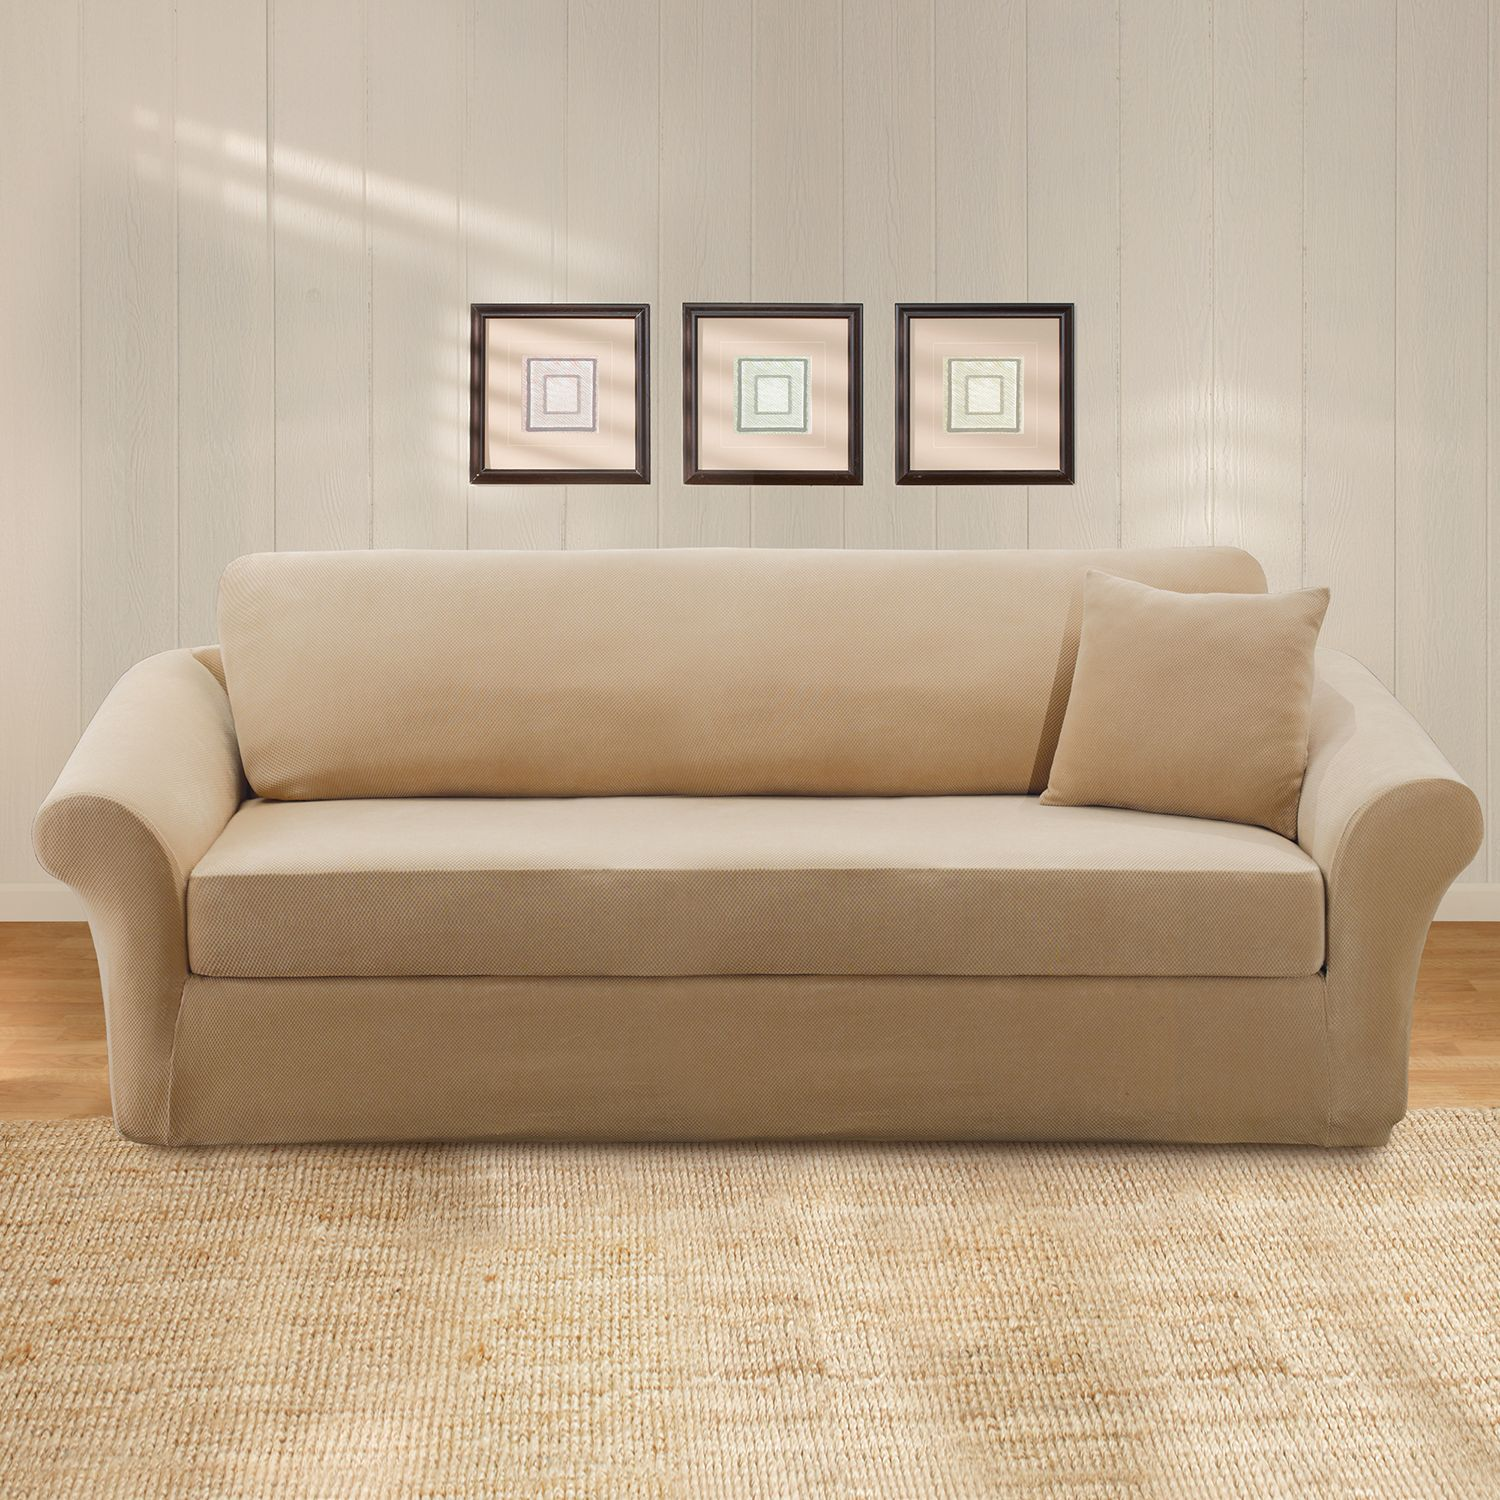 sure fit stretch pique 3 pc sofa slipcover rh kohls com sure fit stretch pique 3-pc. sofa slipcover sure fit 3 piece t cushion sofa slipcover